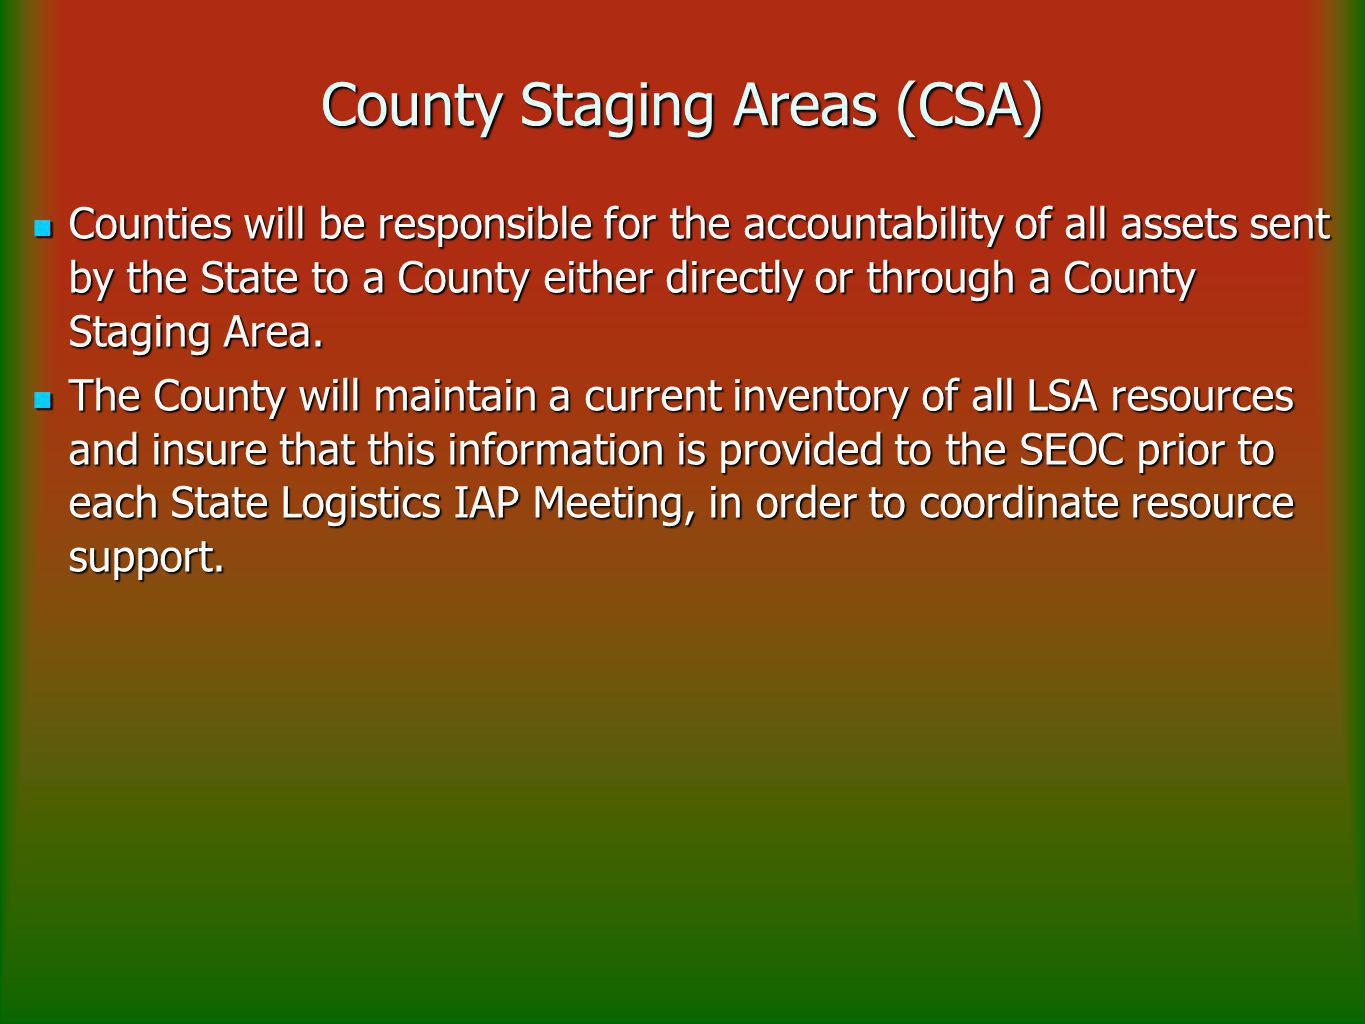 County Staging Areas (CSA) Counties will be responsible for the accountability of all assets sent by the State to a County either directly or through a County Staging Area.